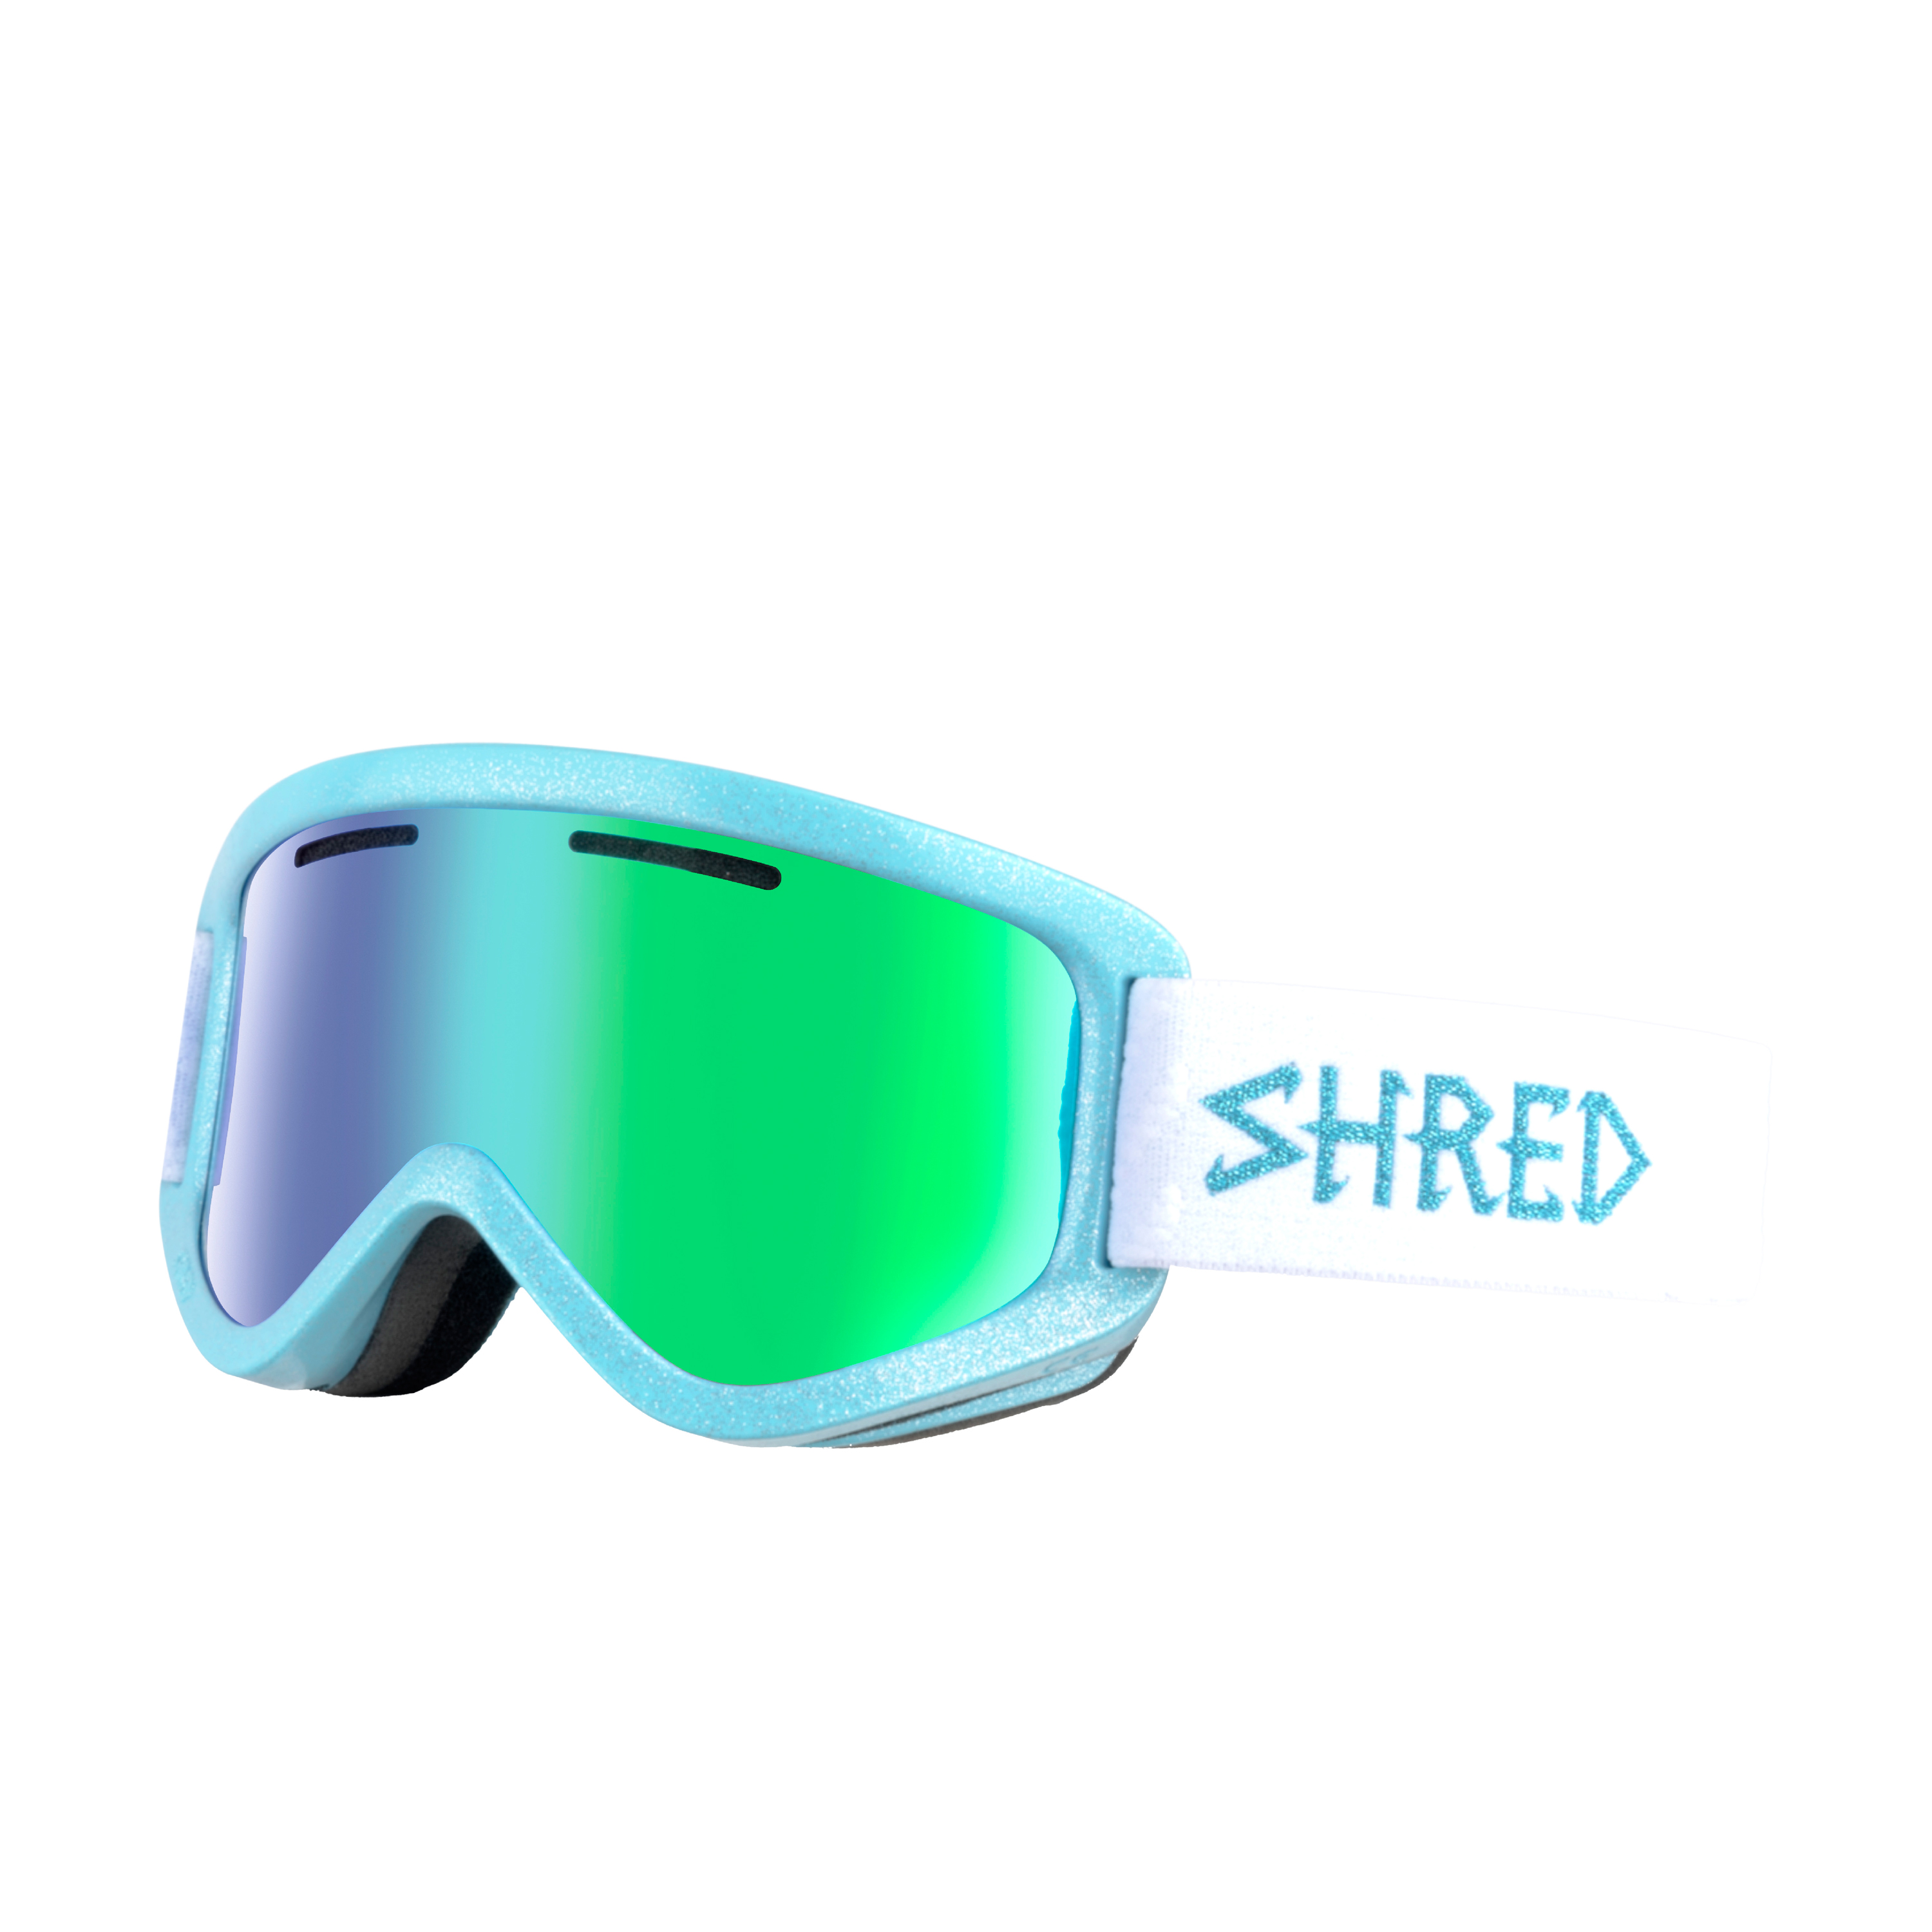 SHRED MASCHERA WONDERFY HEY PRETTY GIRL-PLASMA CBL GRN - 2019